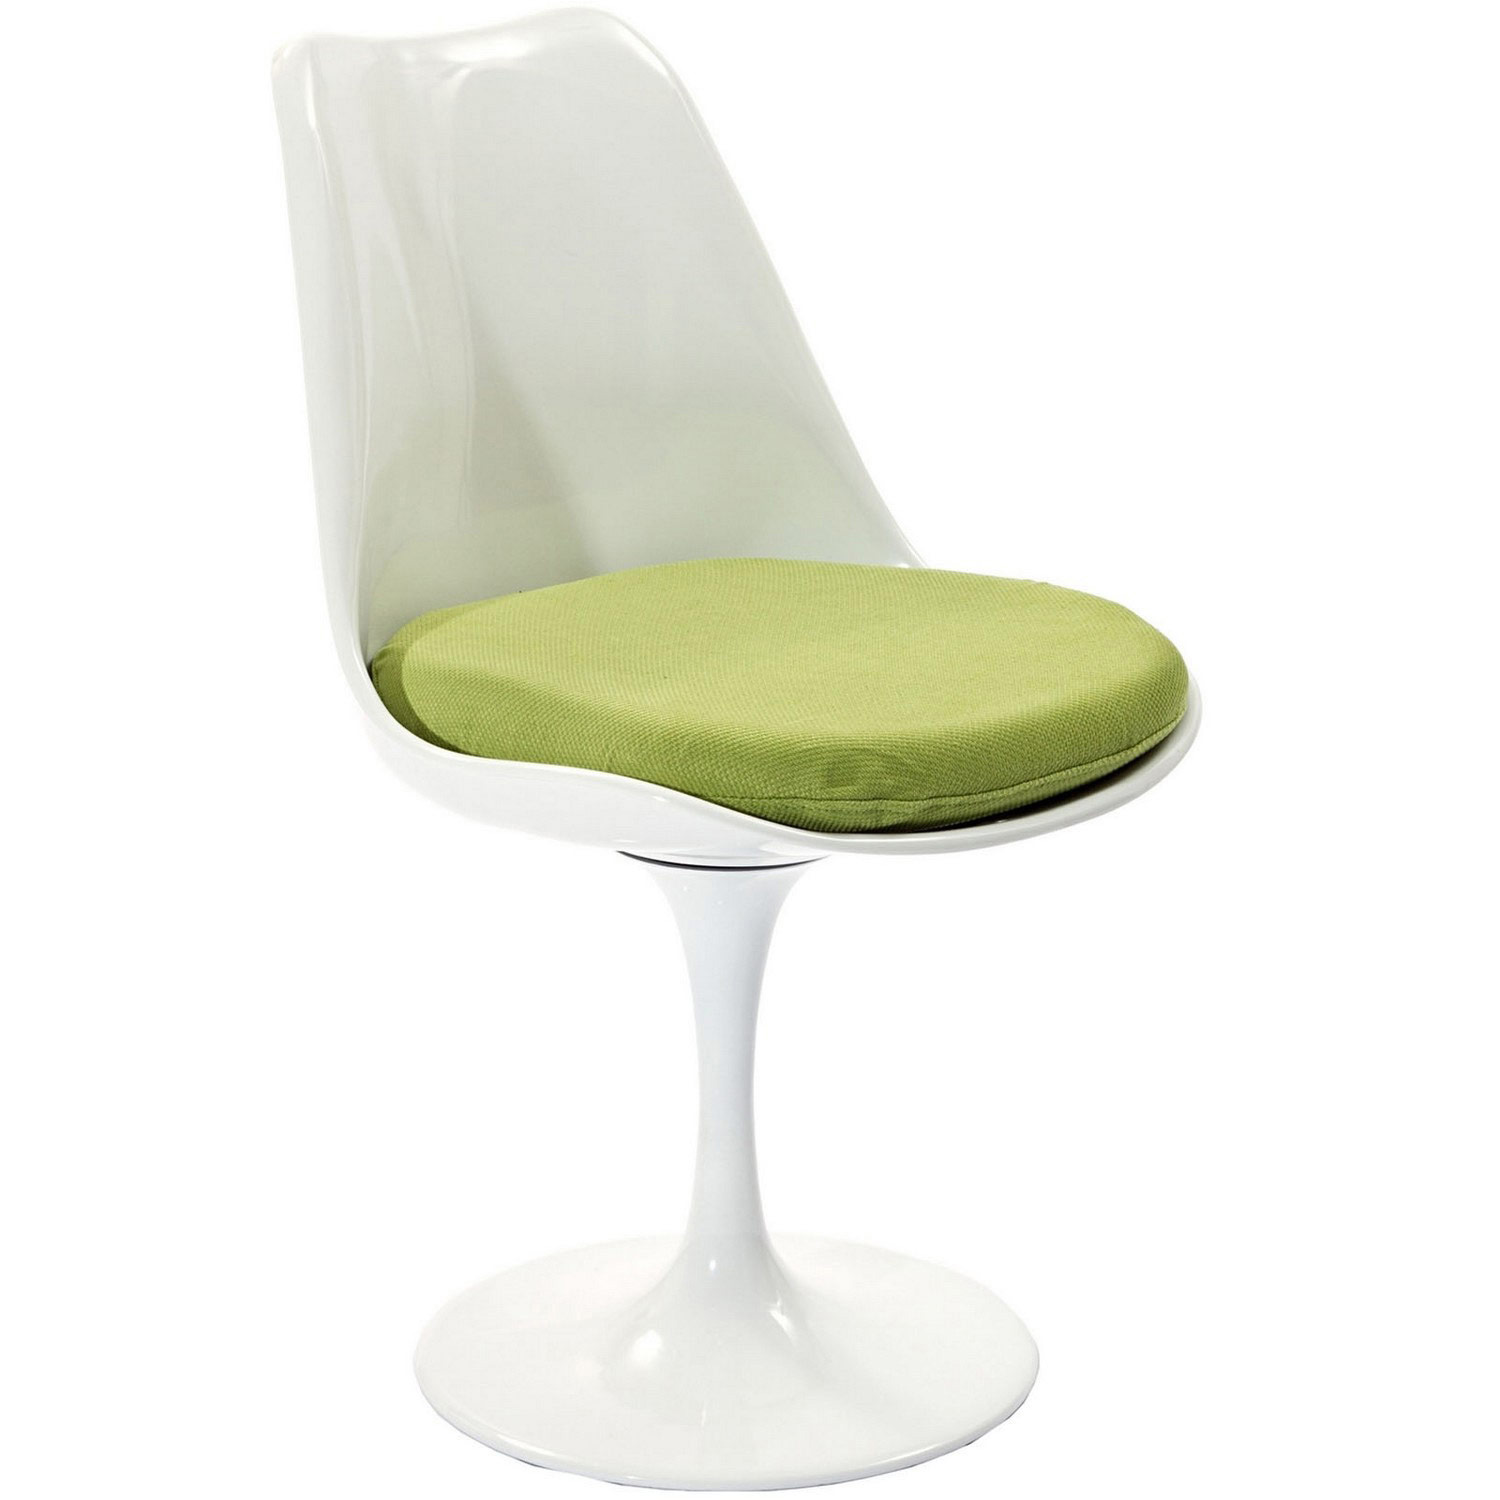 Modway Lippa Dining Fabric Side Chair - Green